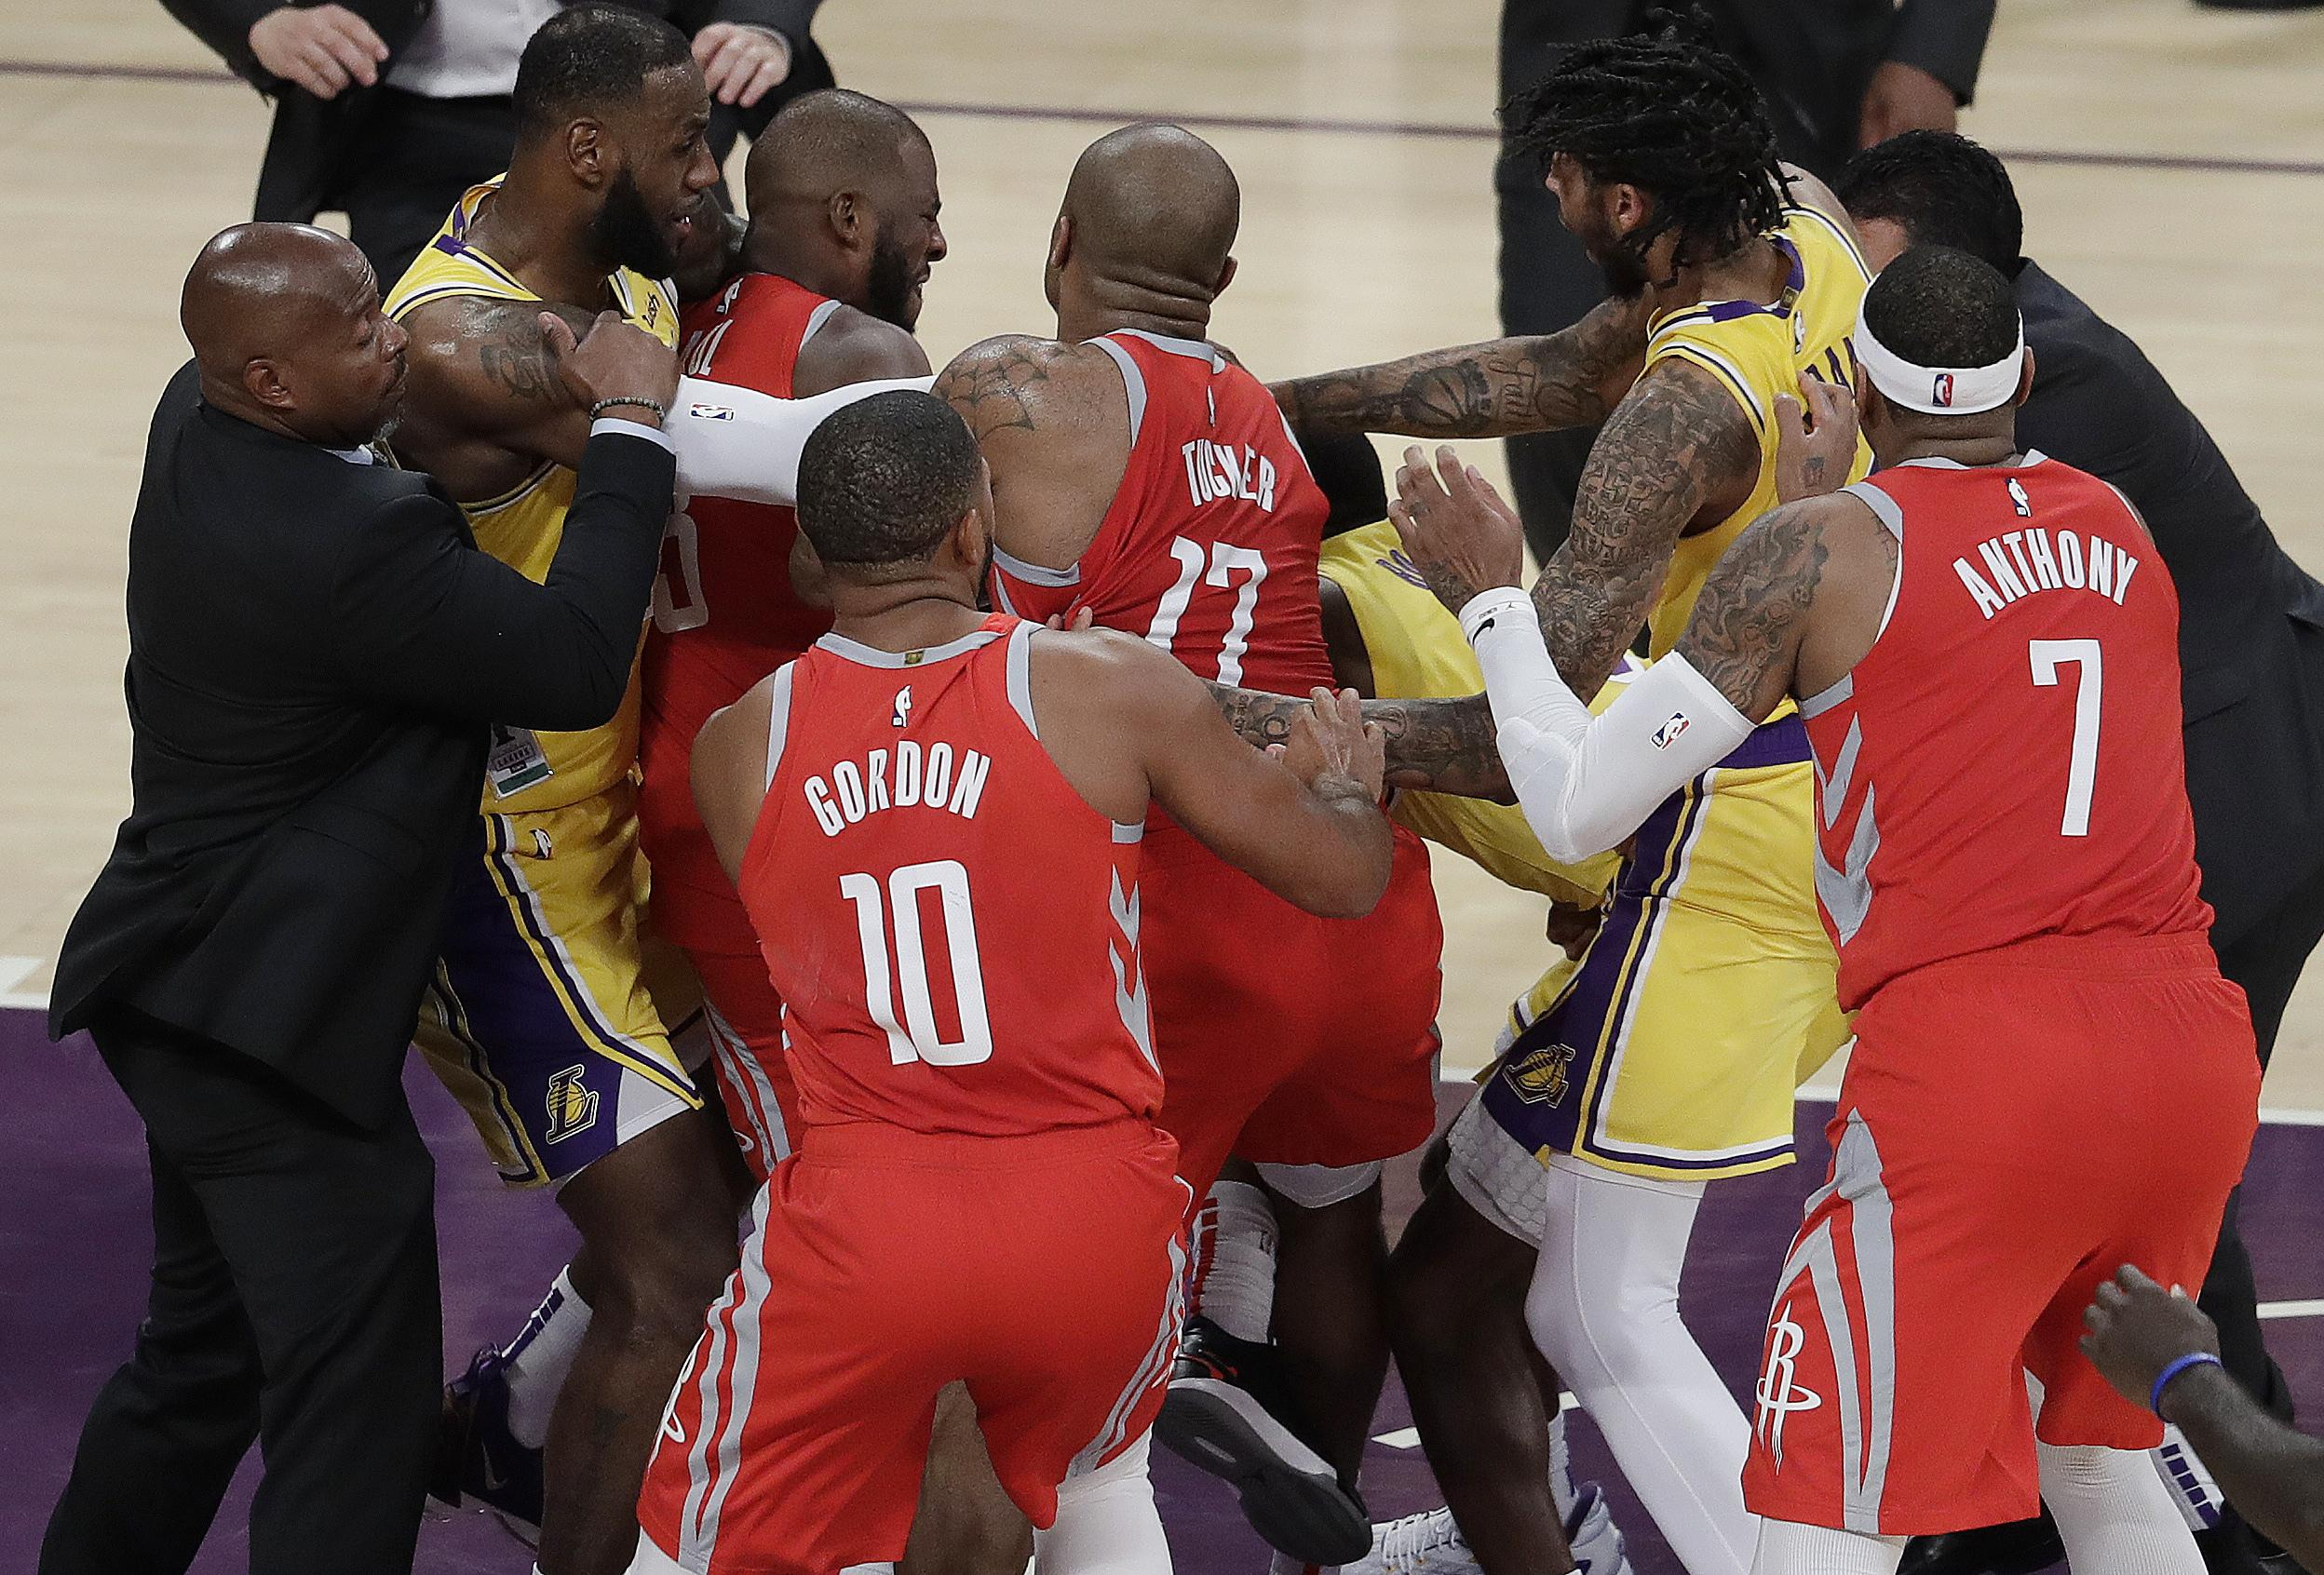 The chaos unfolded when Ingram fouled James Harden but it was long-term rivals Paul and Rondo that went at each other most